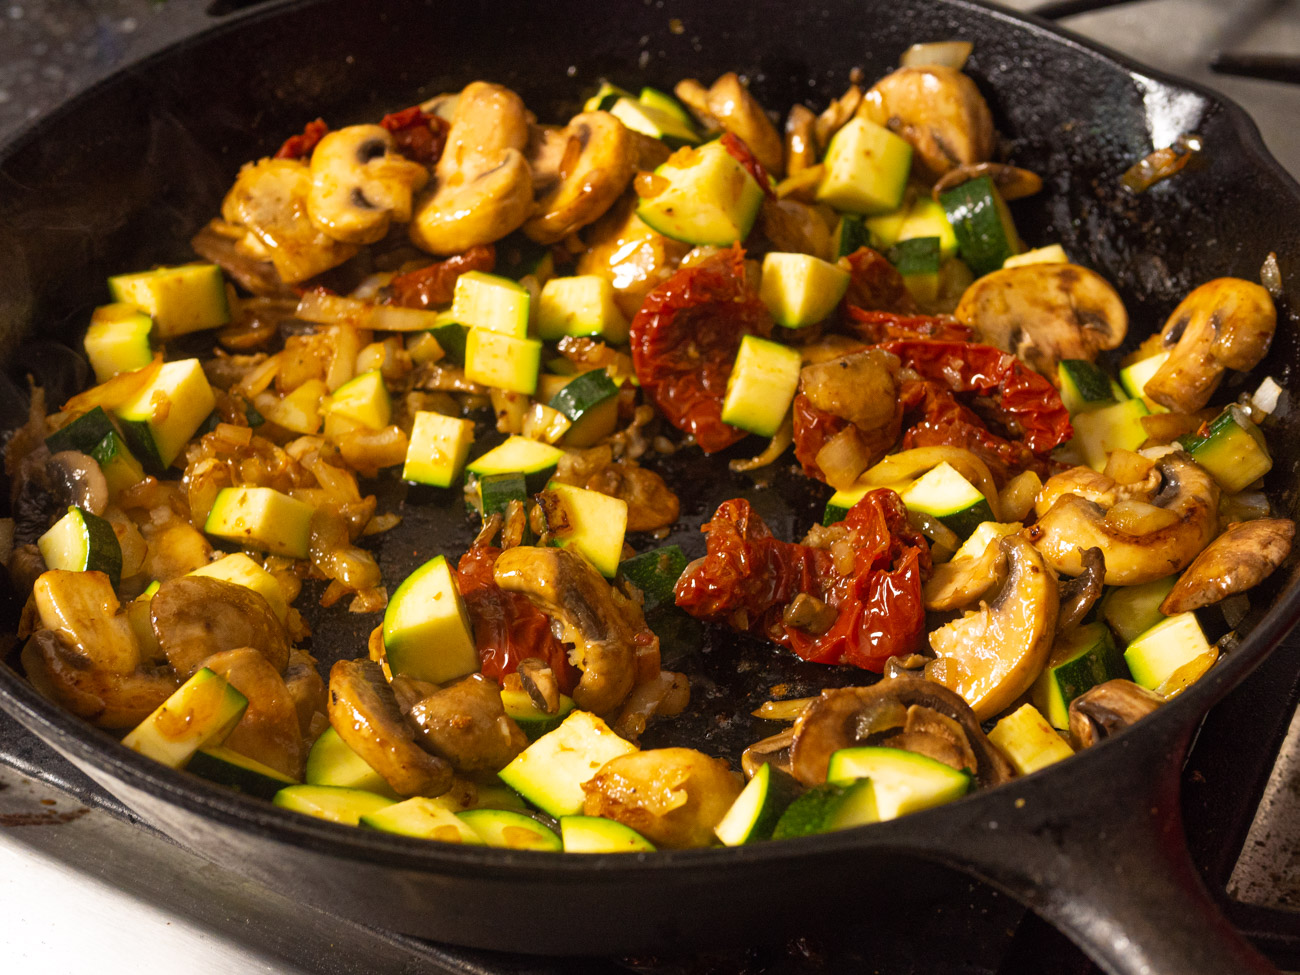 Add garlic, zucchini, and sun-dried tomatoes and cook for 2 minutes. Stir in diced tomatoes, Italian seasoning, and balsamic vinegar. Season to taste with salt and pepper.